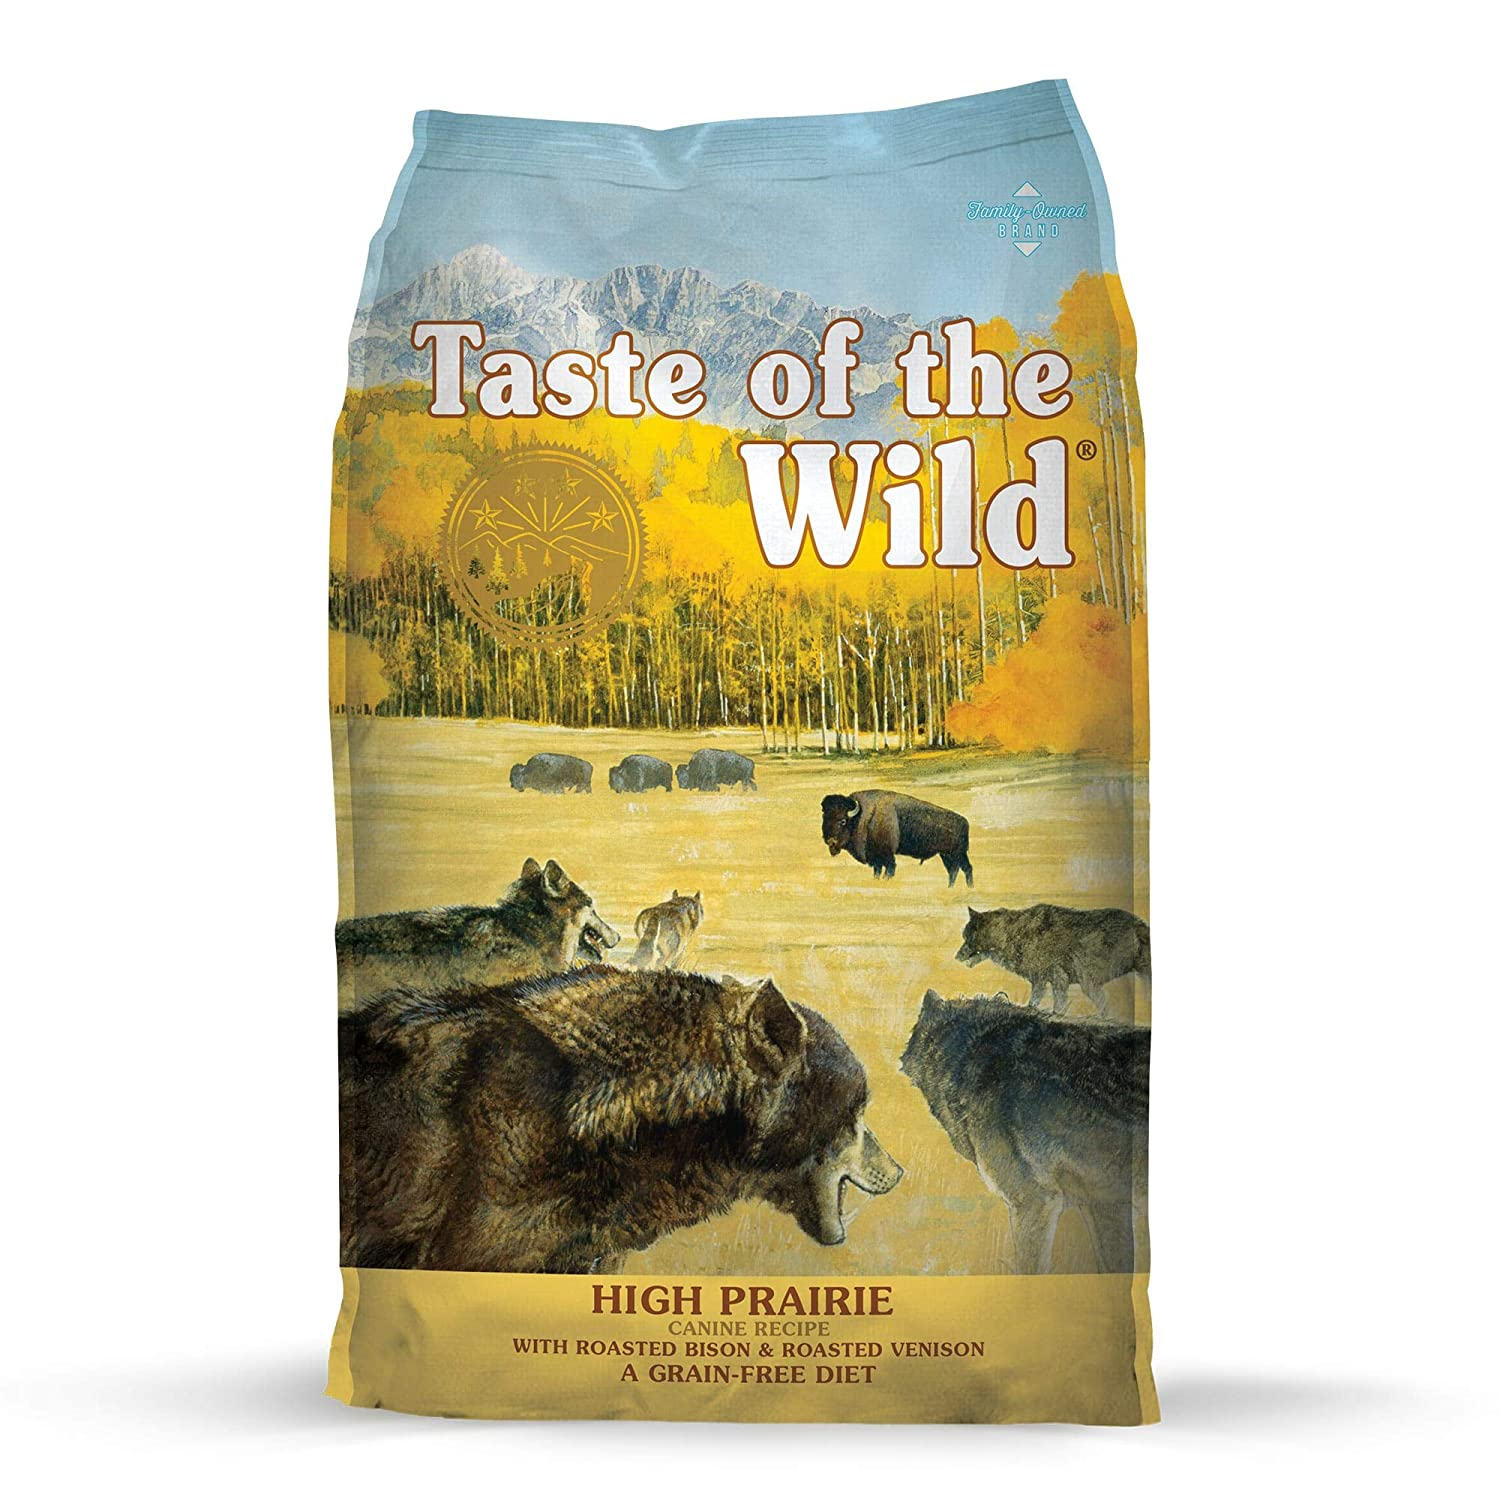 4. Taste of the Wild High Prairie Grain-Free Dry Dog Food